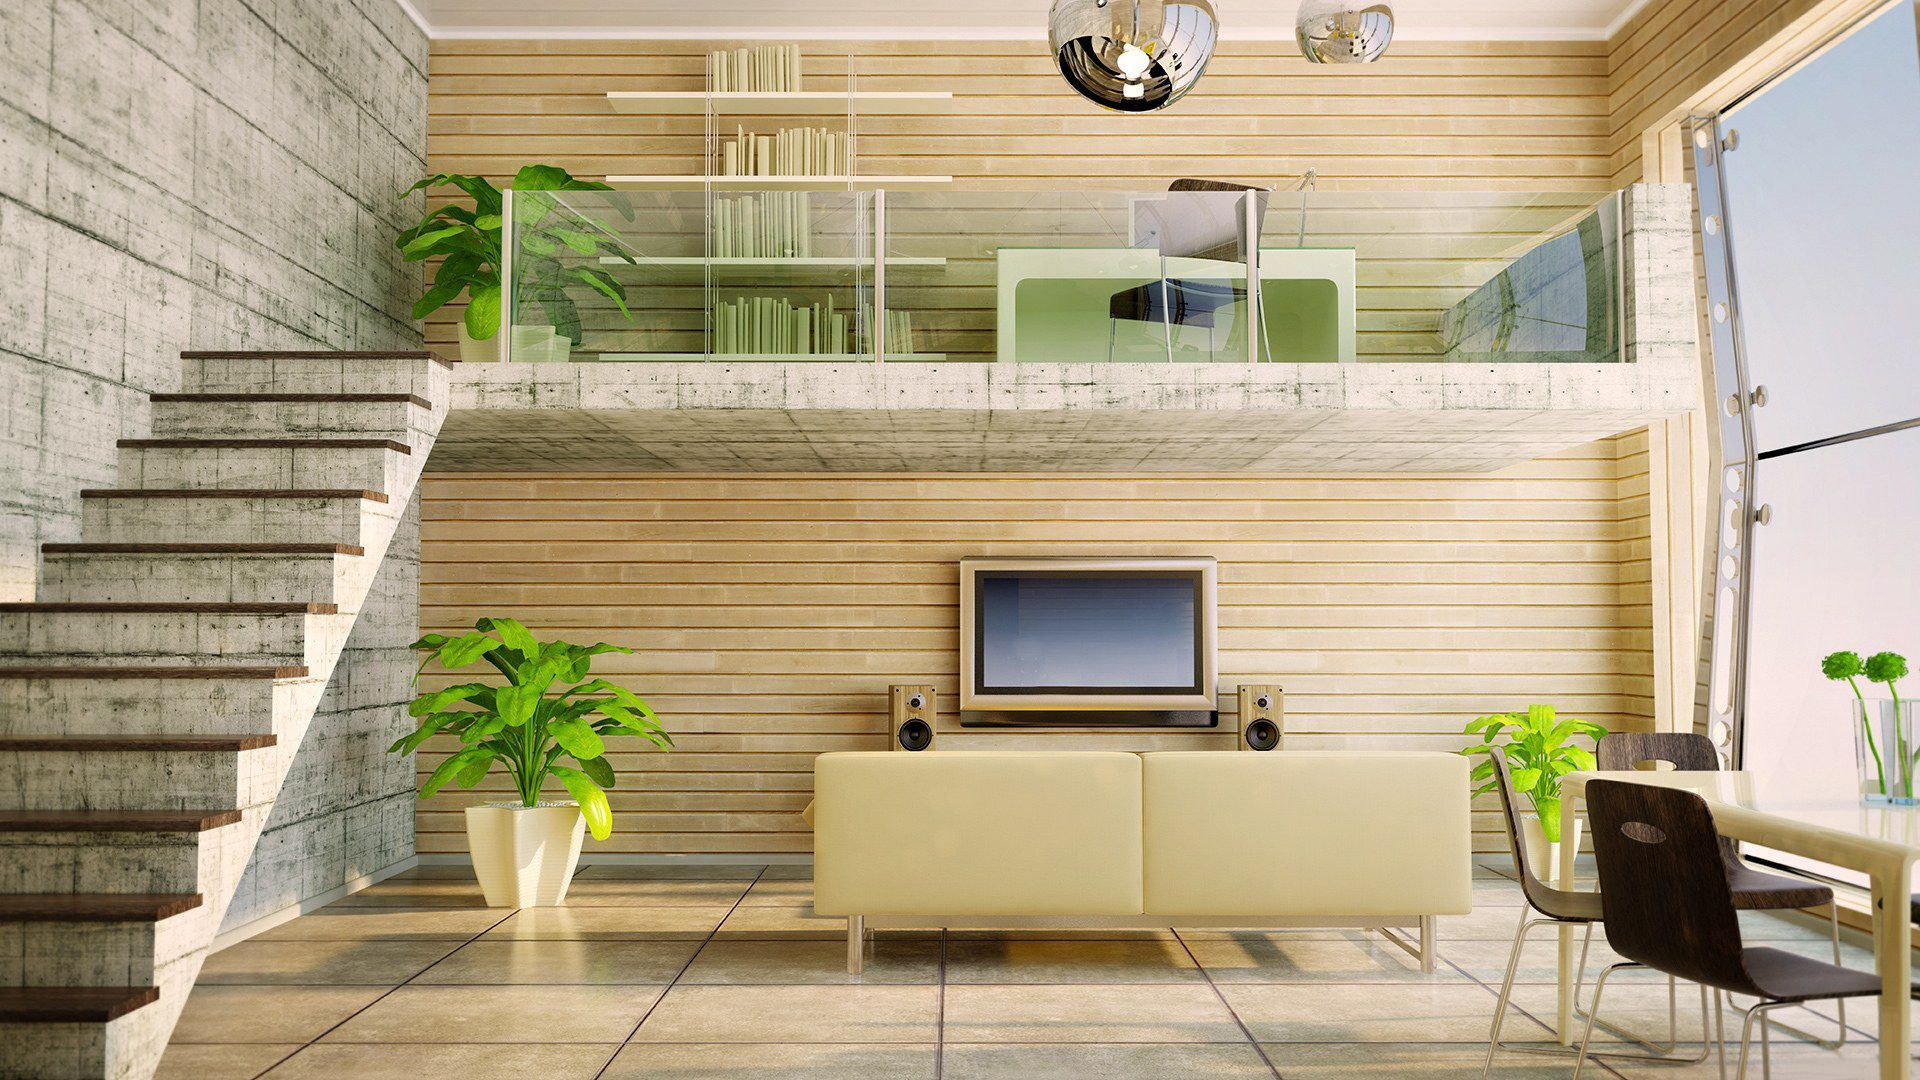 Hd Wallpaper Home Decoration Interior